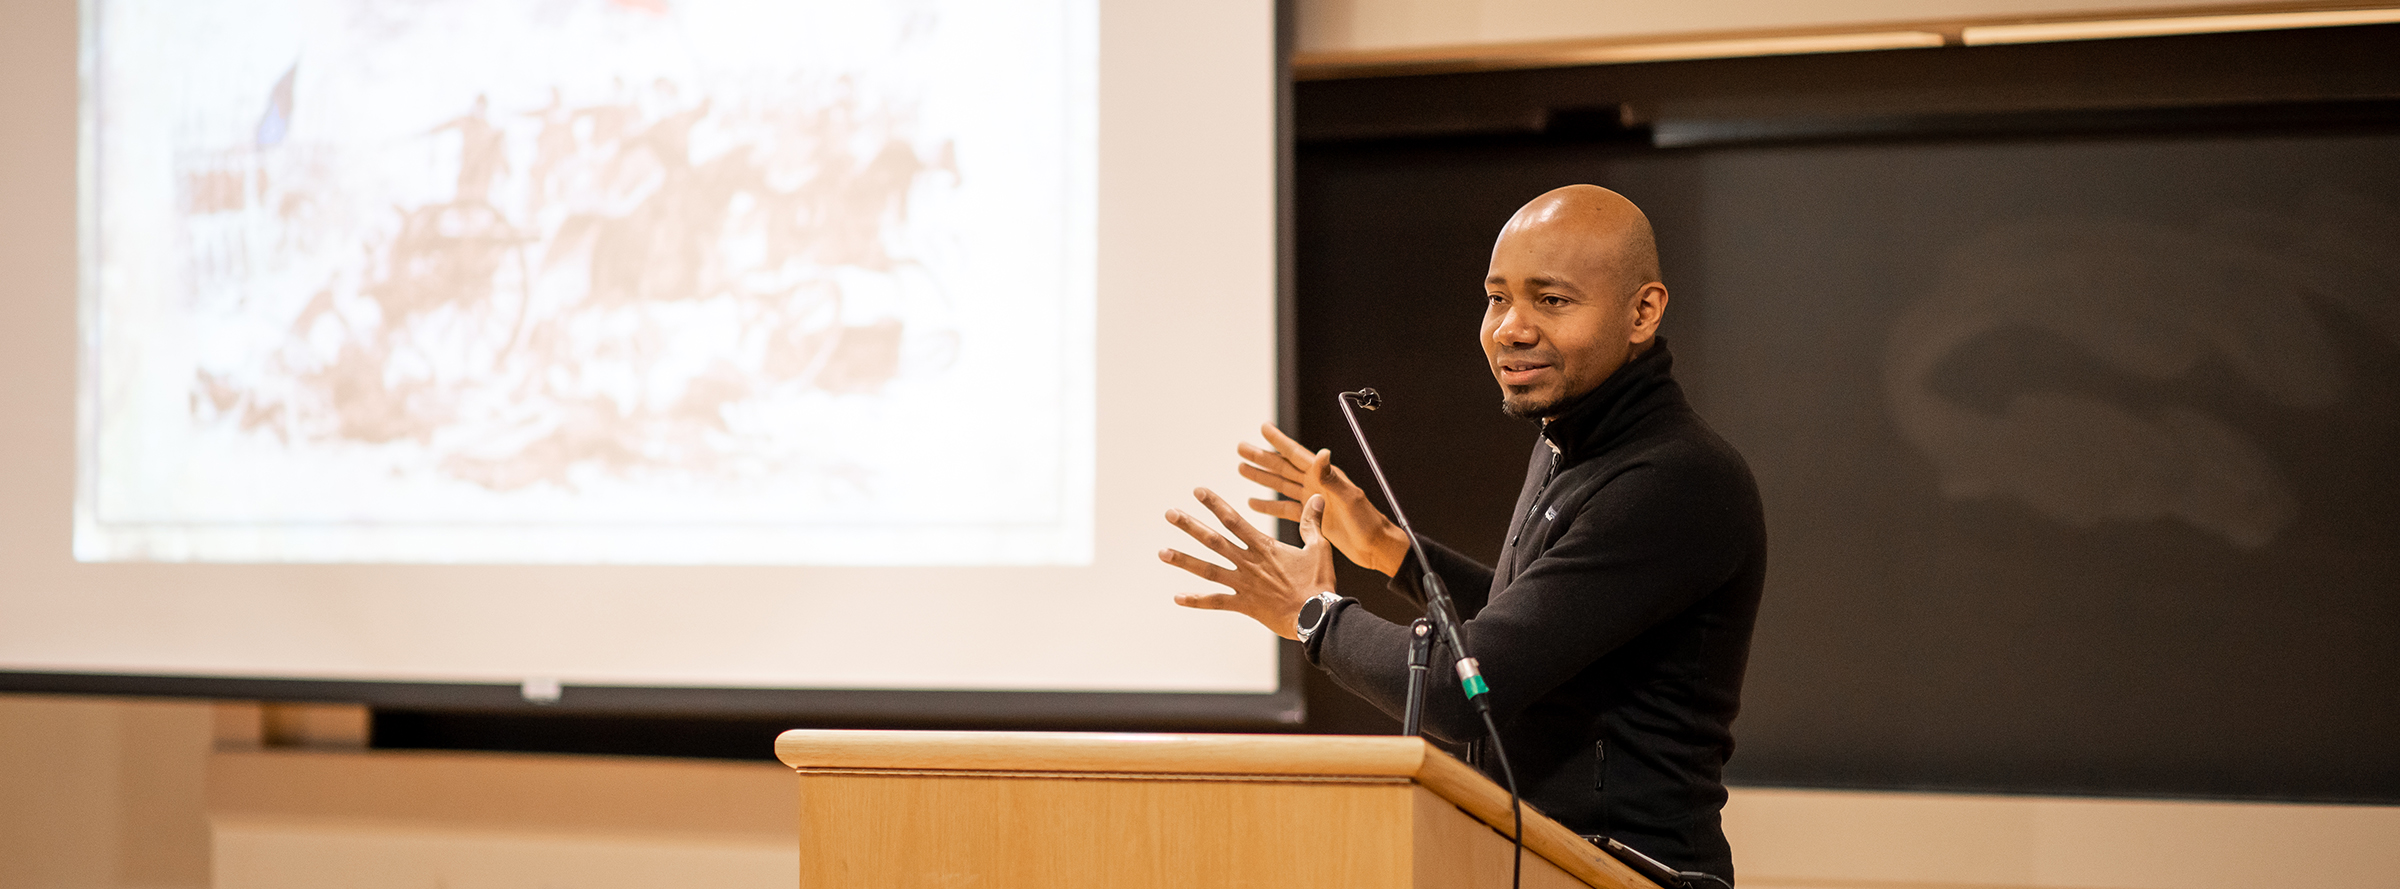 Mr. Paul Miller, also known as DJ Spooky